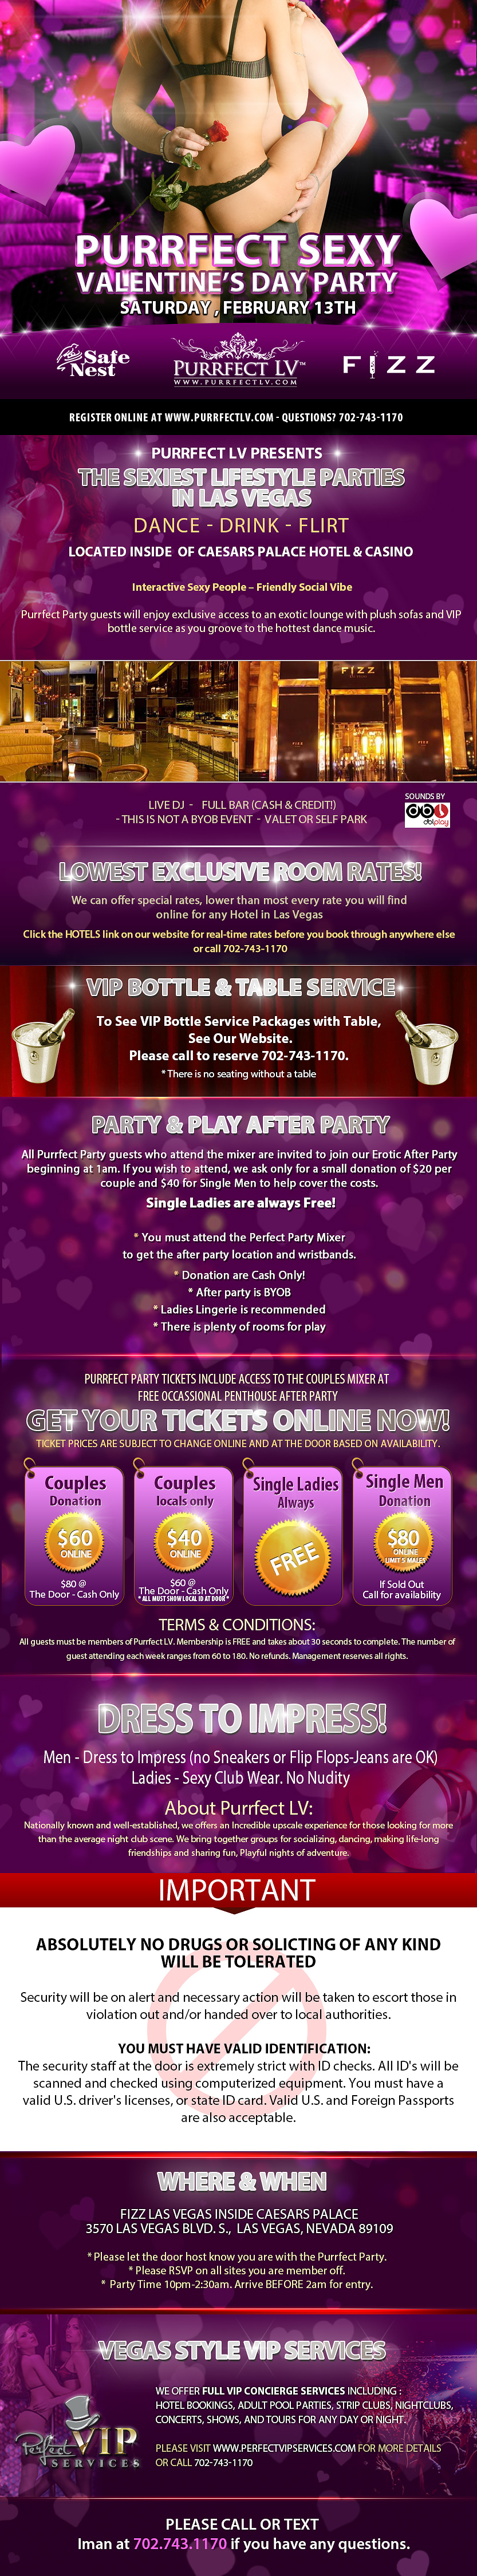 Las Vegas Swinger Valentine's Day Party Feb 2016